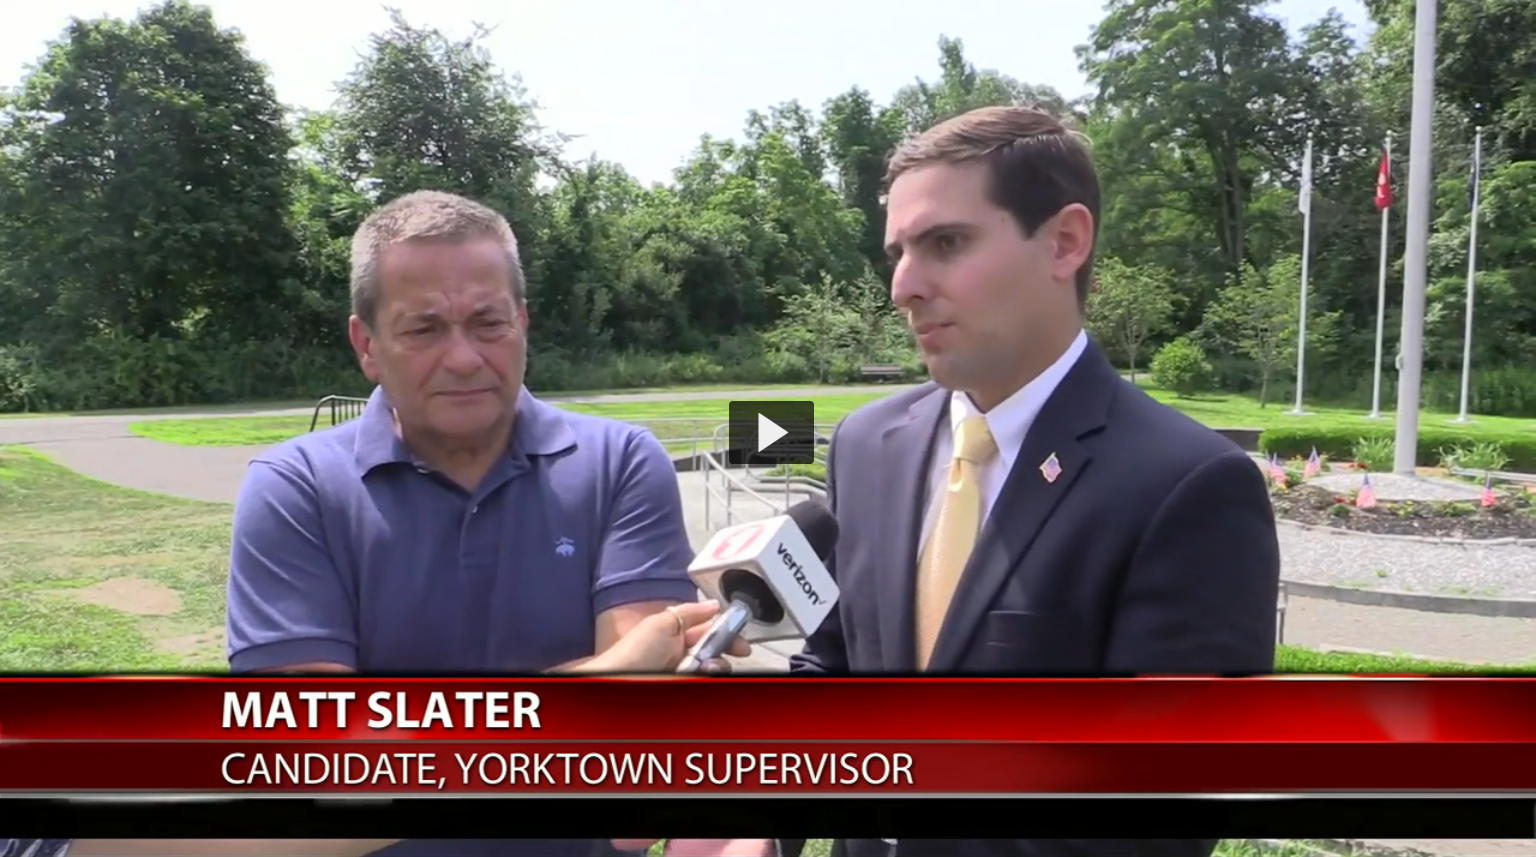 Fios1 News: Slater wants veterans services expansion in Yorktown